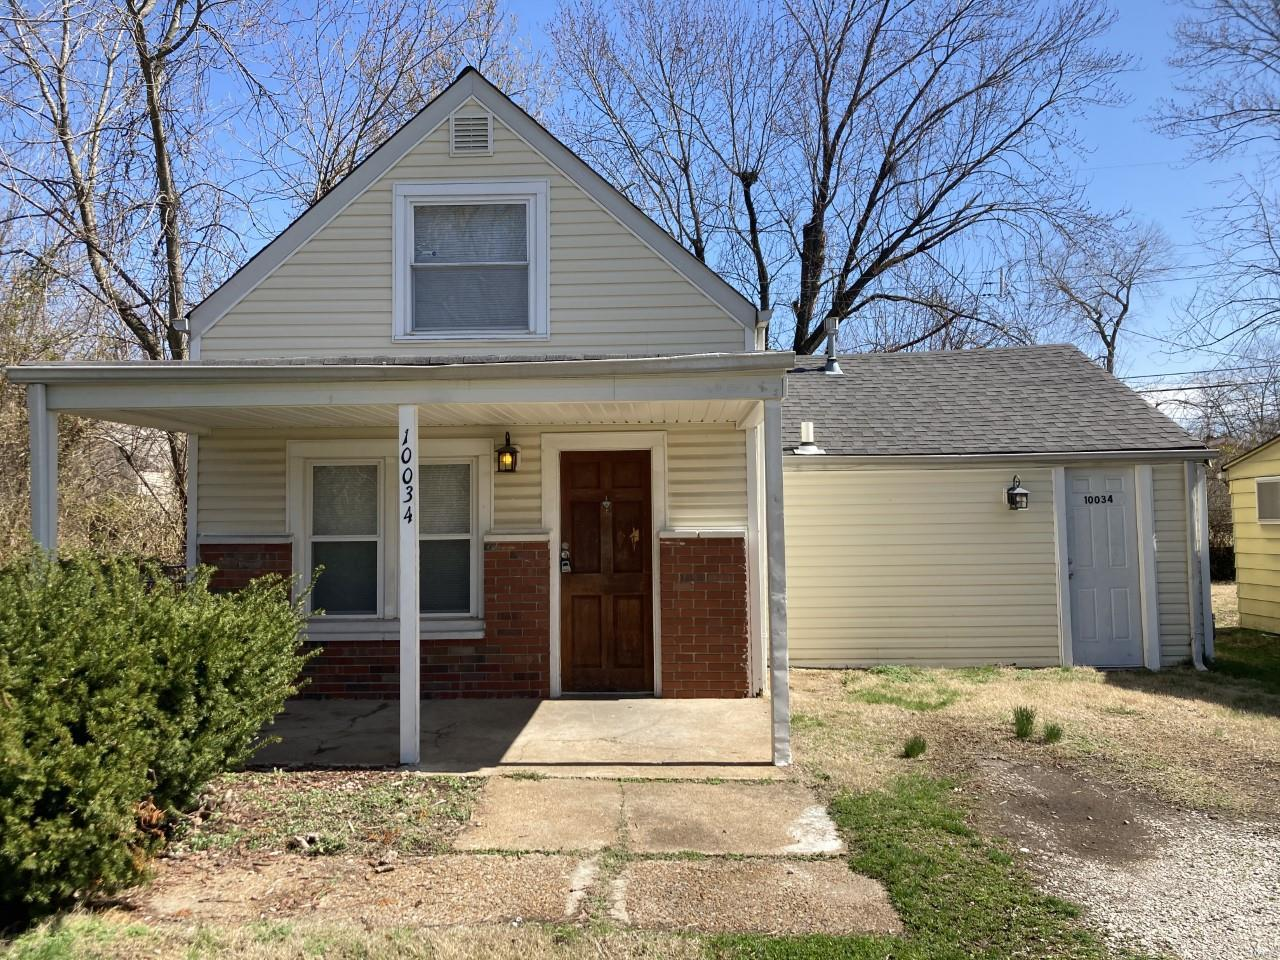 10034 Viscount Drive Property Photo - St Louis, MO real estate listing